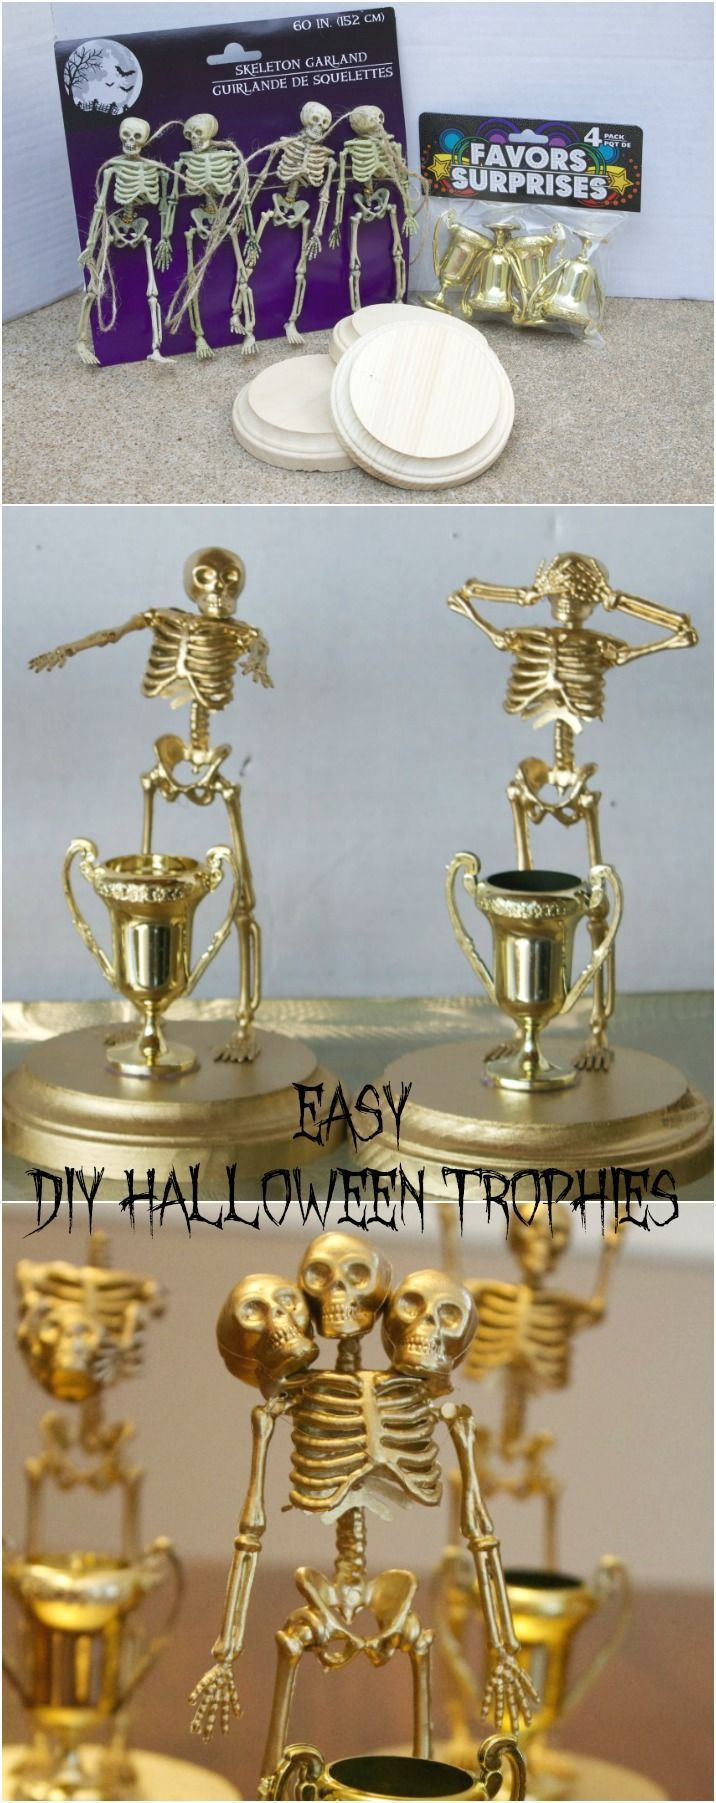 Diy halloween costume contest award trophies costume contest easy make at home halloween trophies for costume contest parties solutioingenieria Images